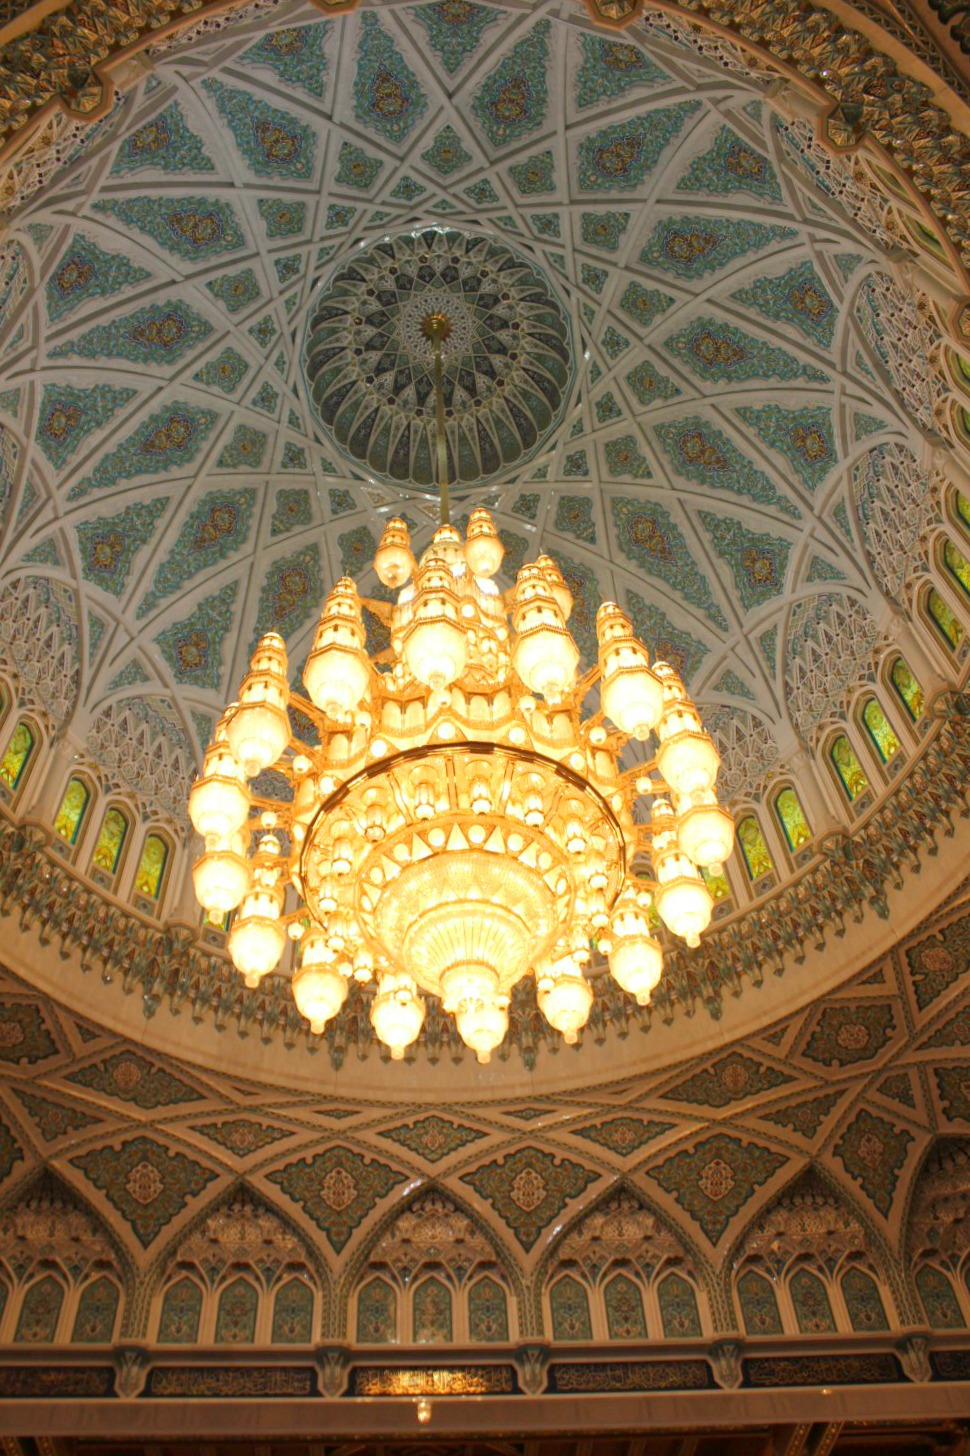 The huge chandelier in the men's prayer hall at the Sultan Qaboos Grand Mosque in Muscat - my tips for spending 24 hours in Muscat, Oman with kids